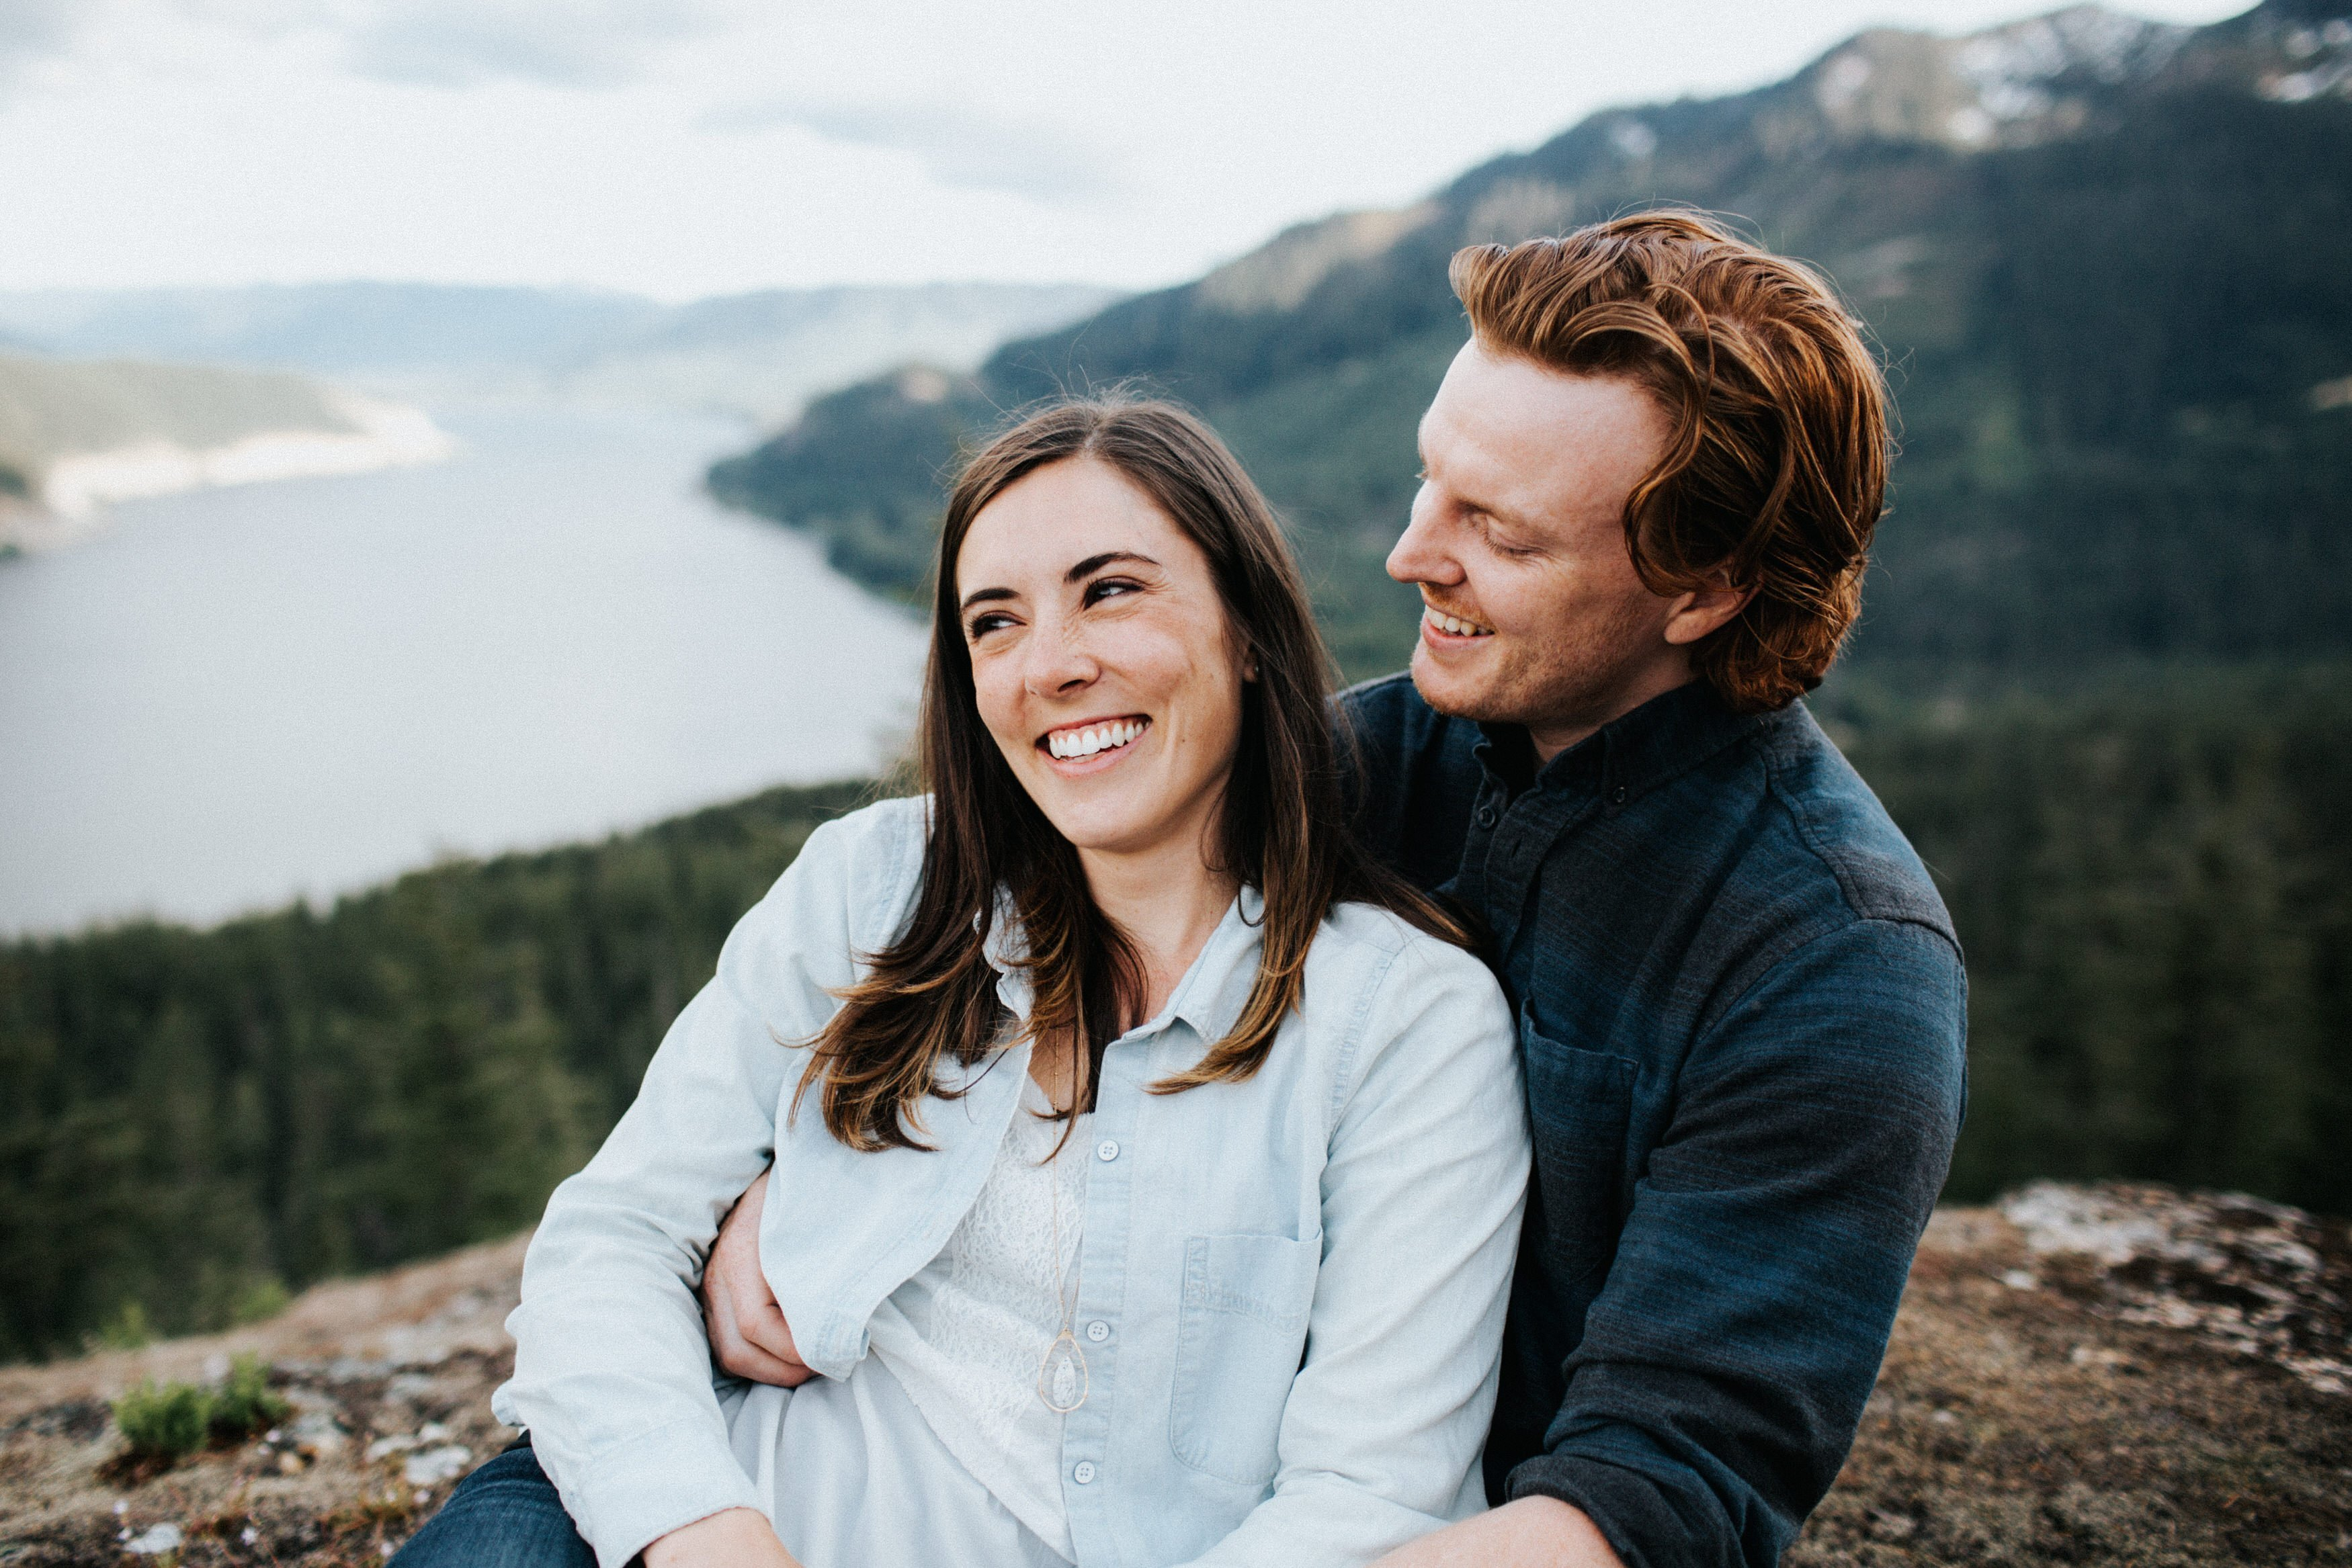 A couple laughs together and smiles during their pnw engagement session